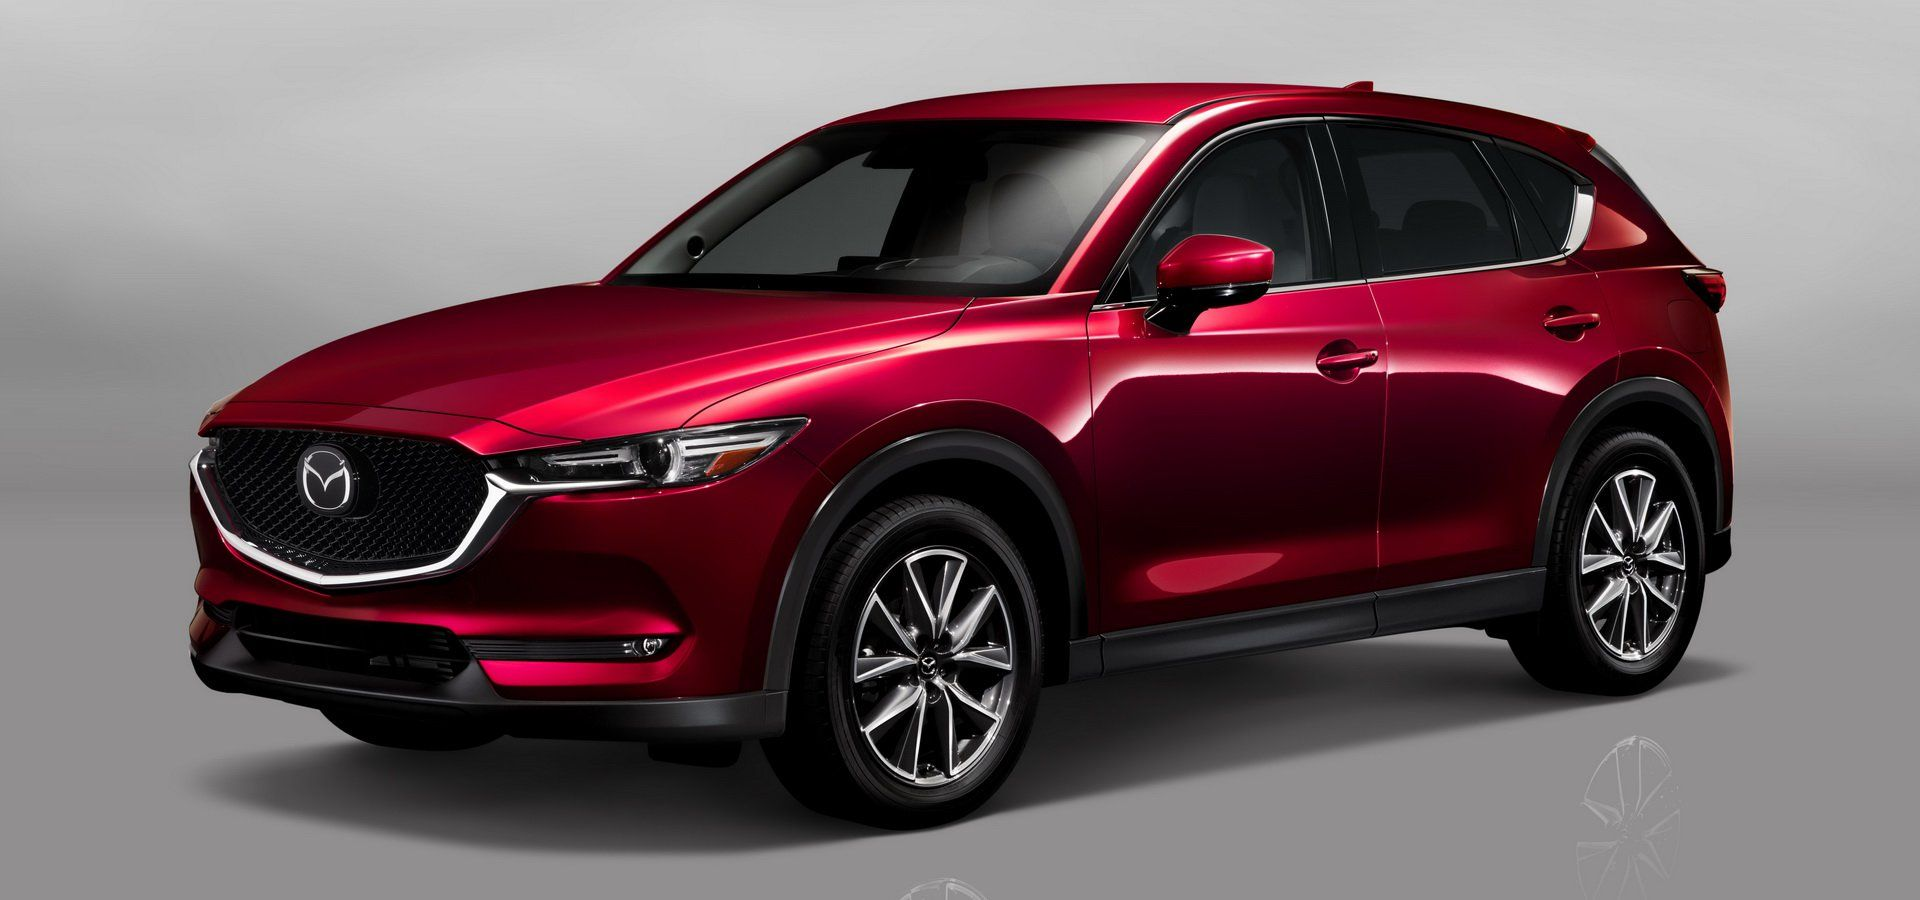 Mazda Cx 30 Vs Cx 3 Vs Cx 5 Which One Is Your Favorite Carscoops In 2020 Suv Mazda Cx5 Mazda